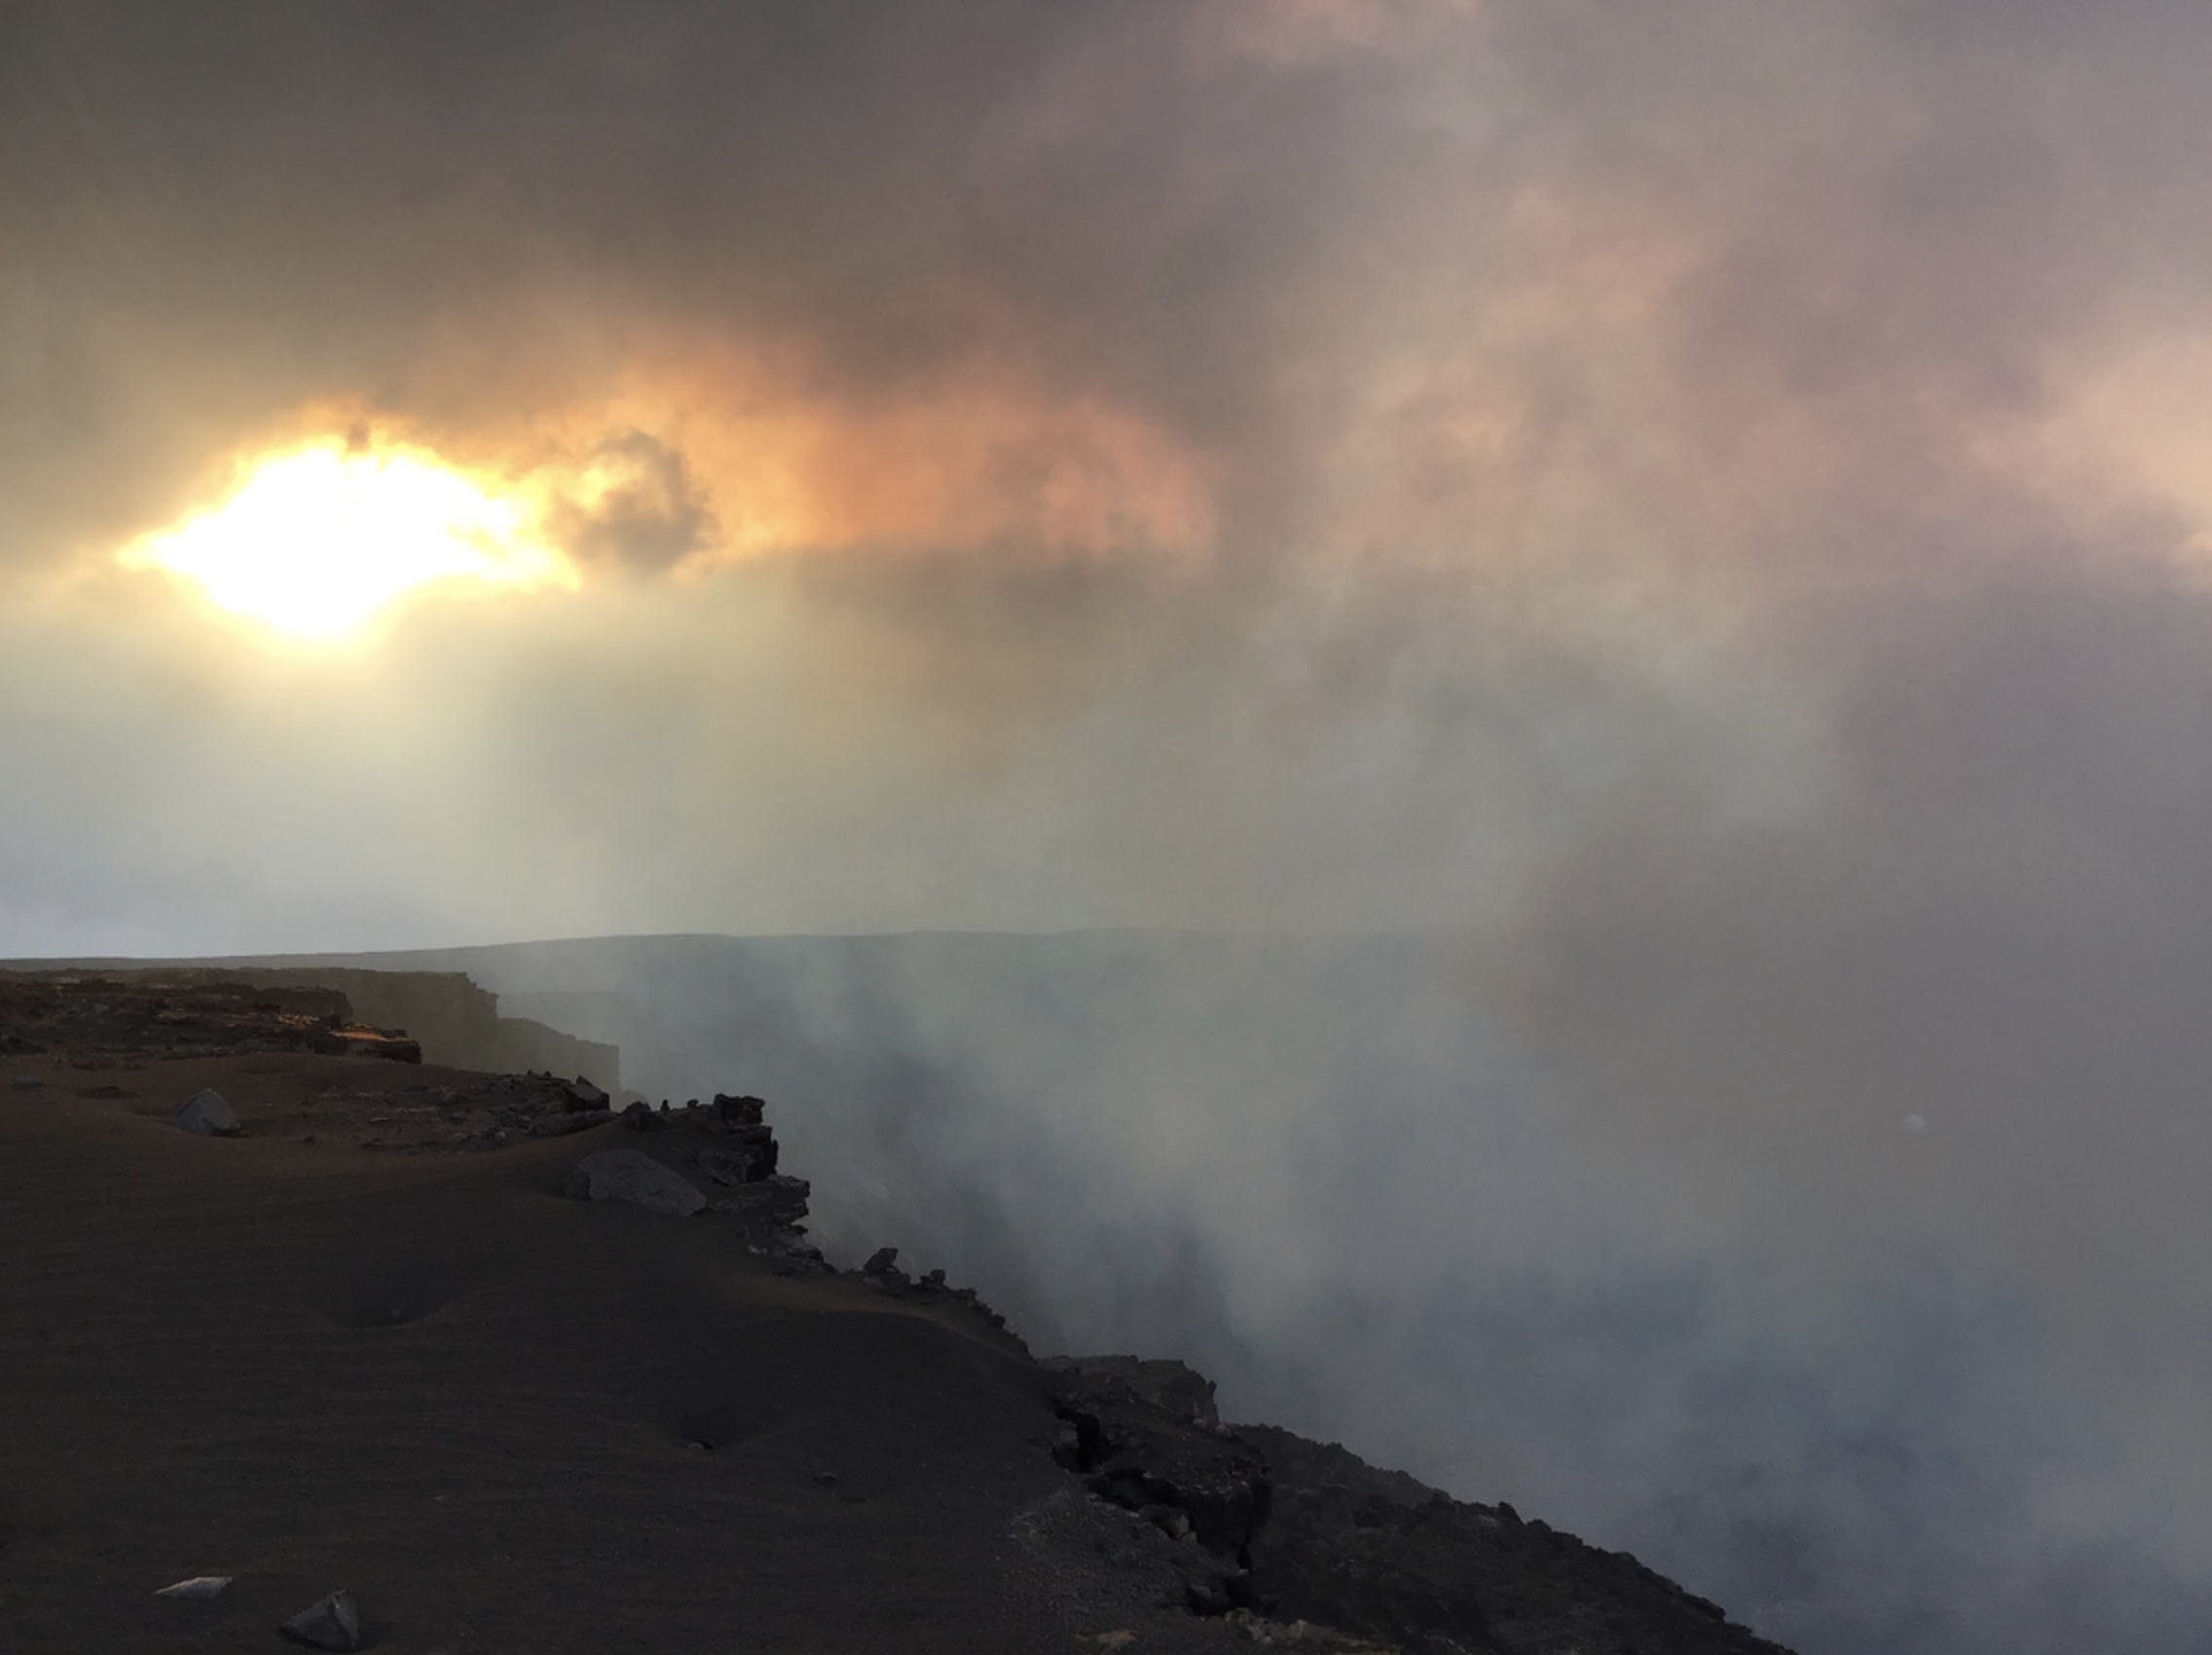 Kīlauea Eruption Creates Fluctuating Air Quality Levels for Vog and SO₂